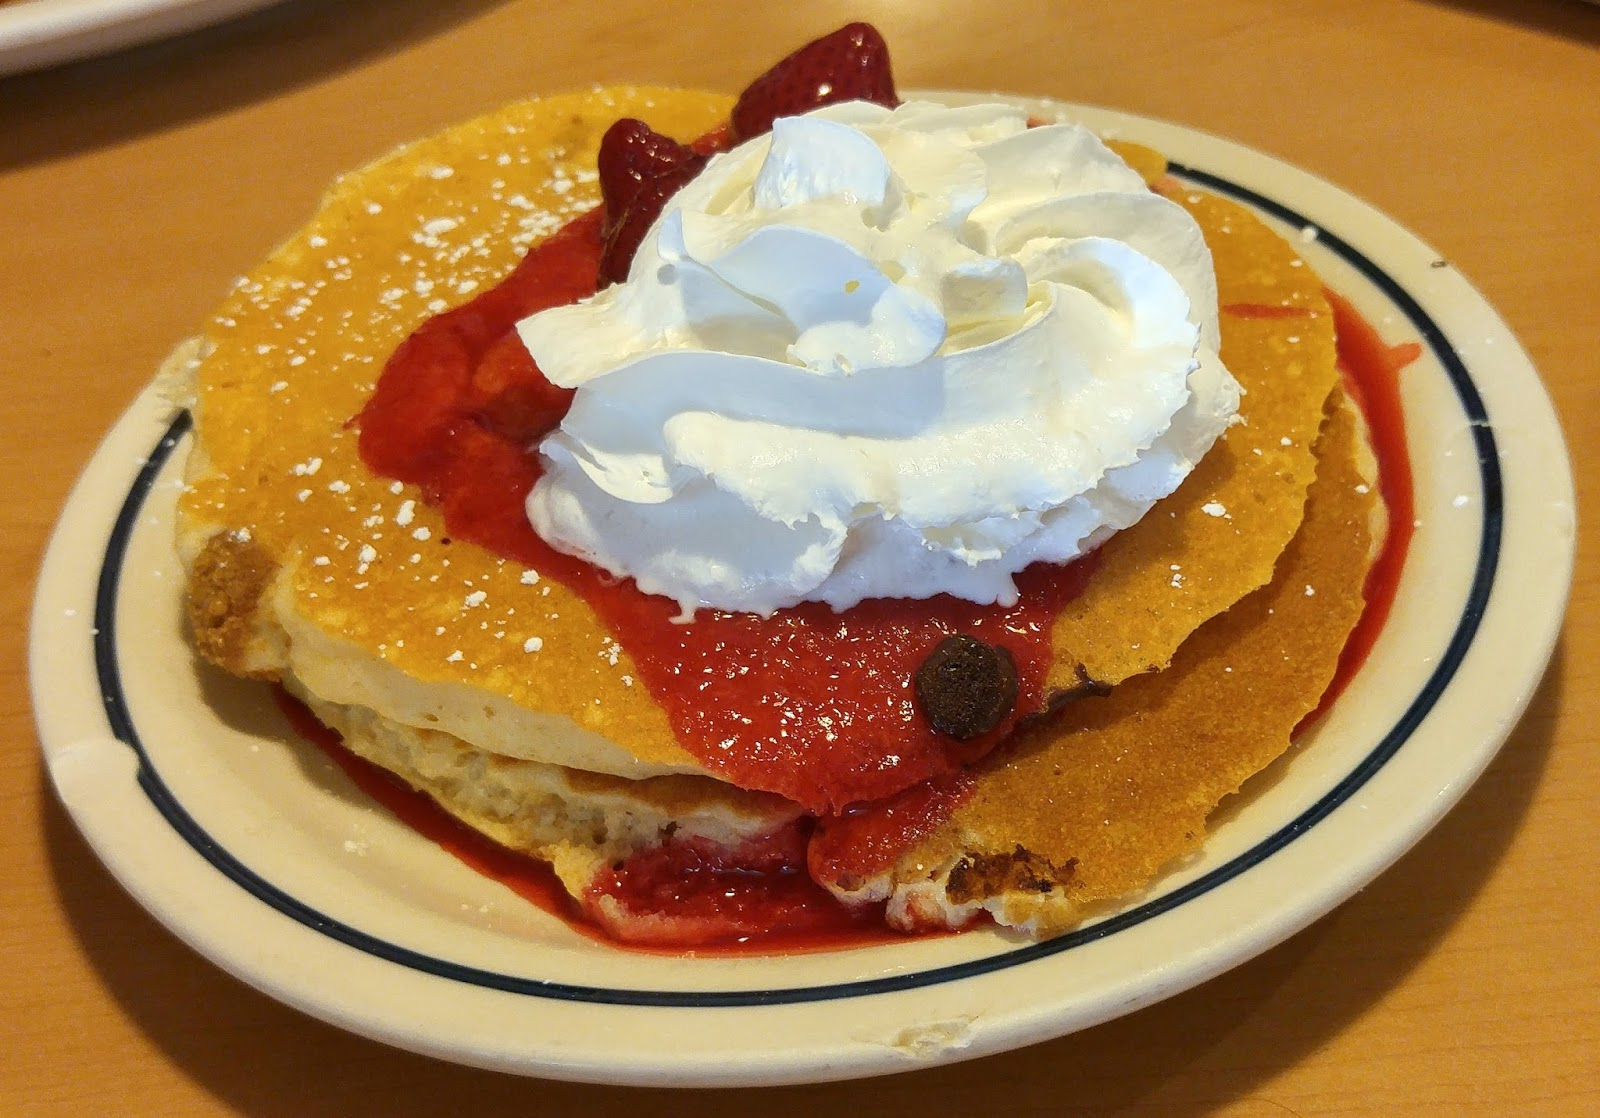 ihop creates delicious seasonal flavored pancakes for the